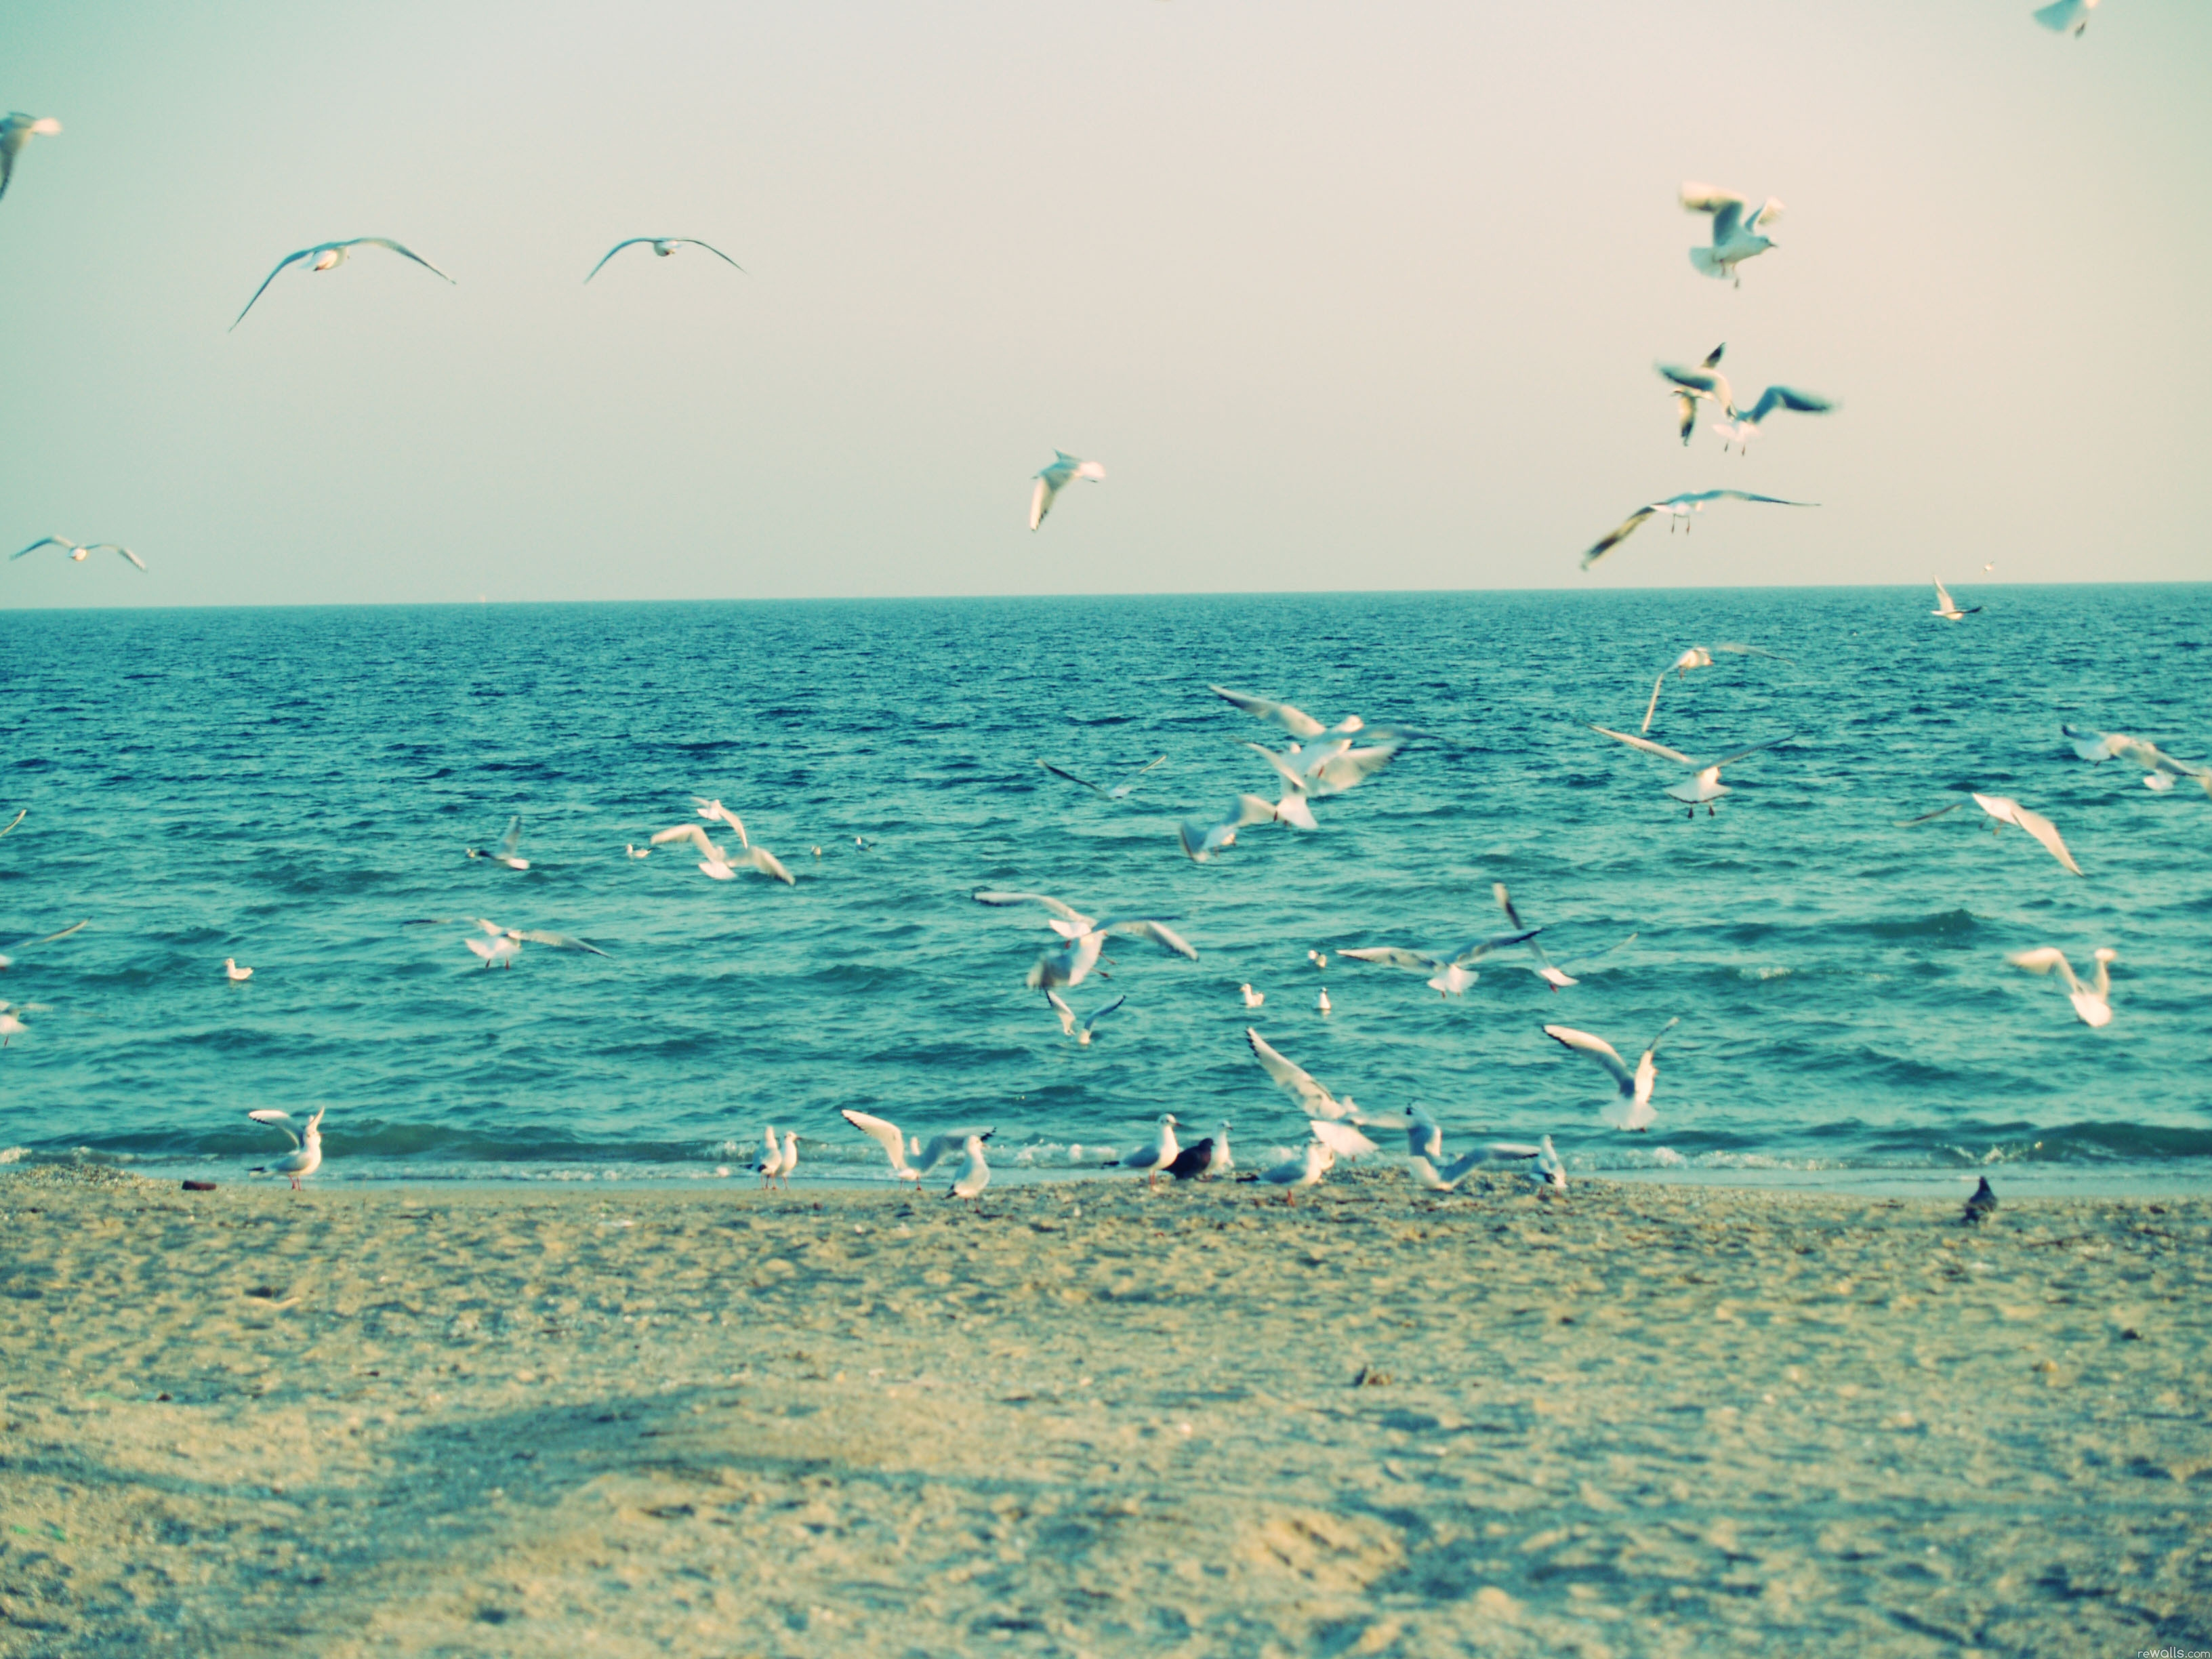 92268 download wallpaper Animals, Sea, Shore, Bank, Sand, Waves, Seagulls screensavers and pictures for free